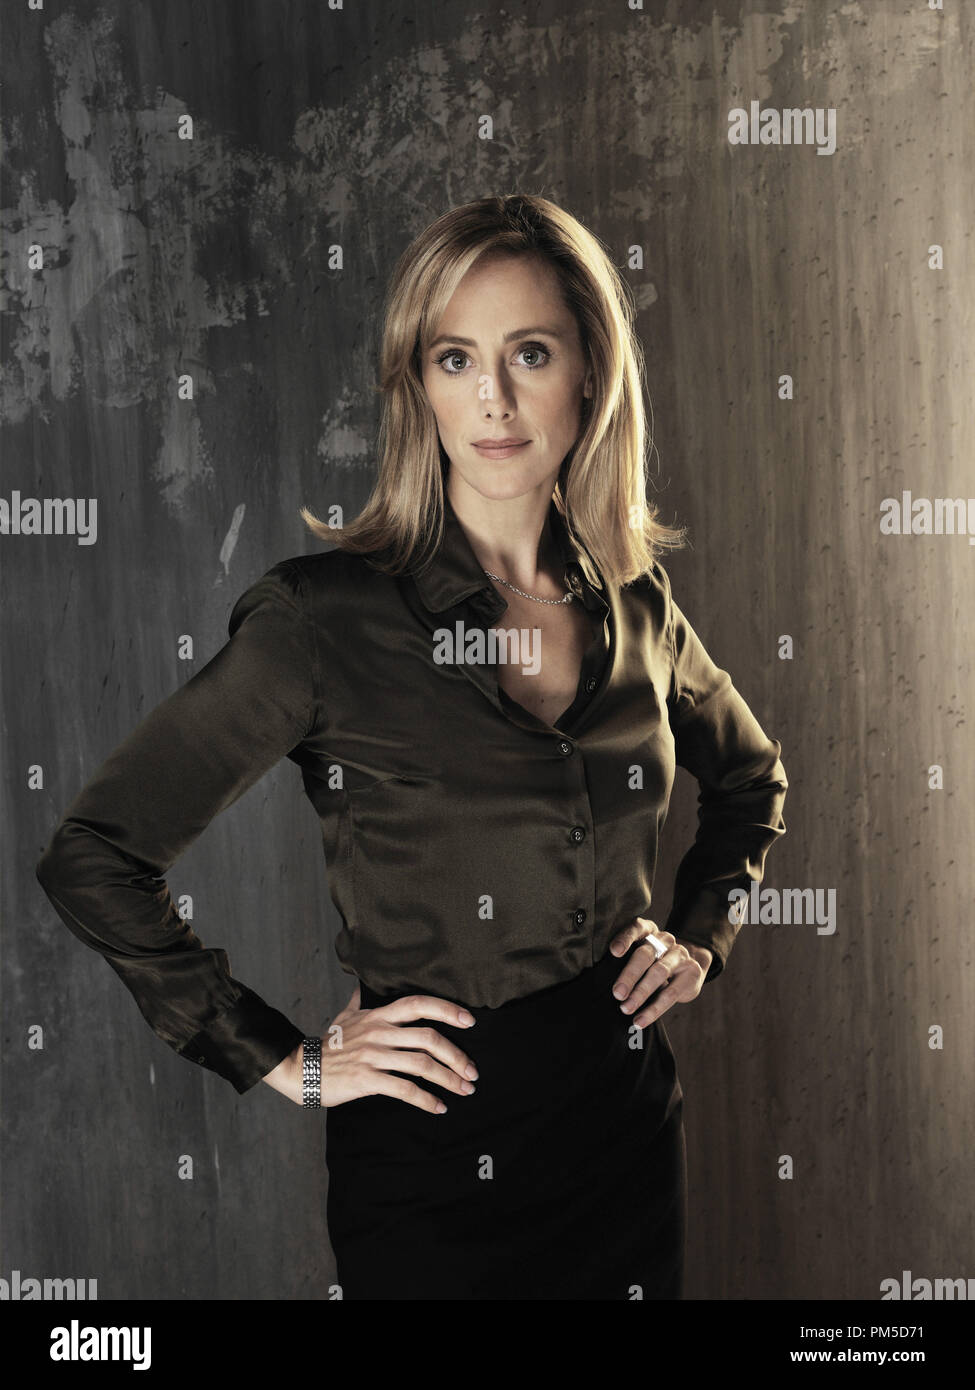 Studio Publicity Still from '24' Kim Raver 2005   File Reference # 307362362THA  For Editorial Use Only -  All Rights Reserved - Stock Image